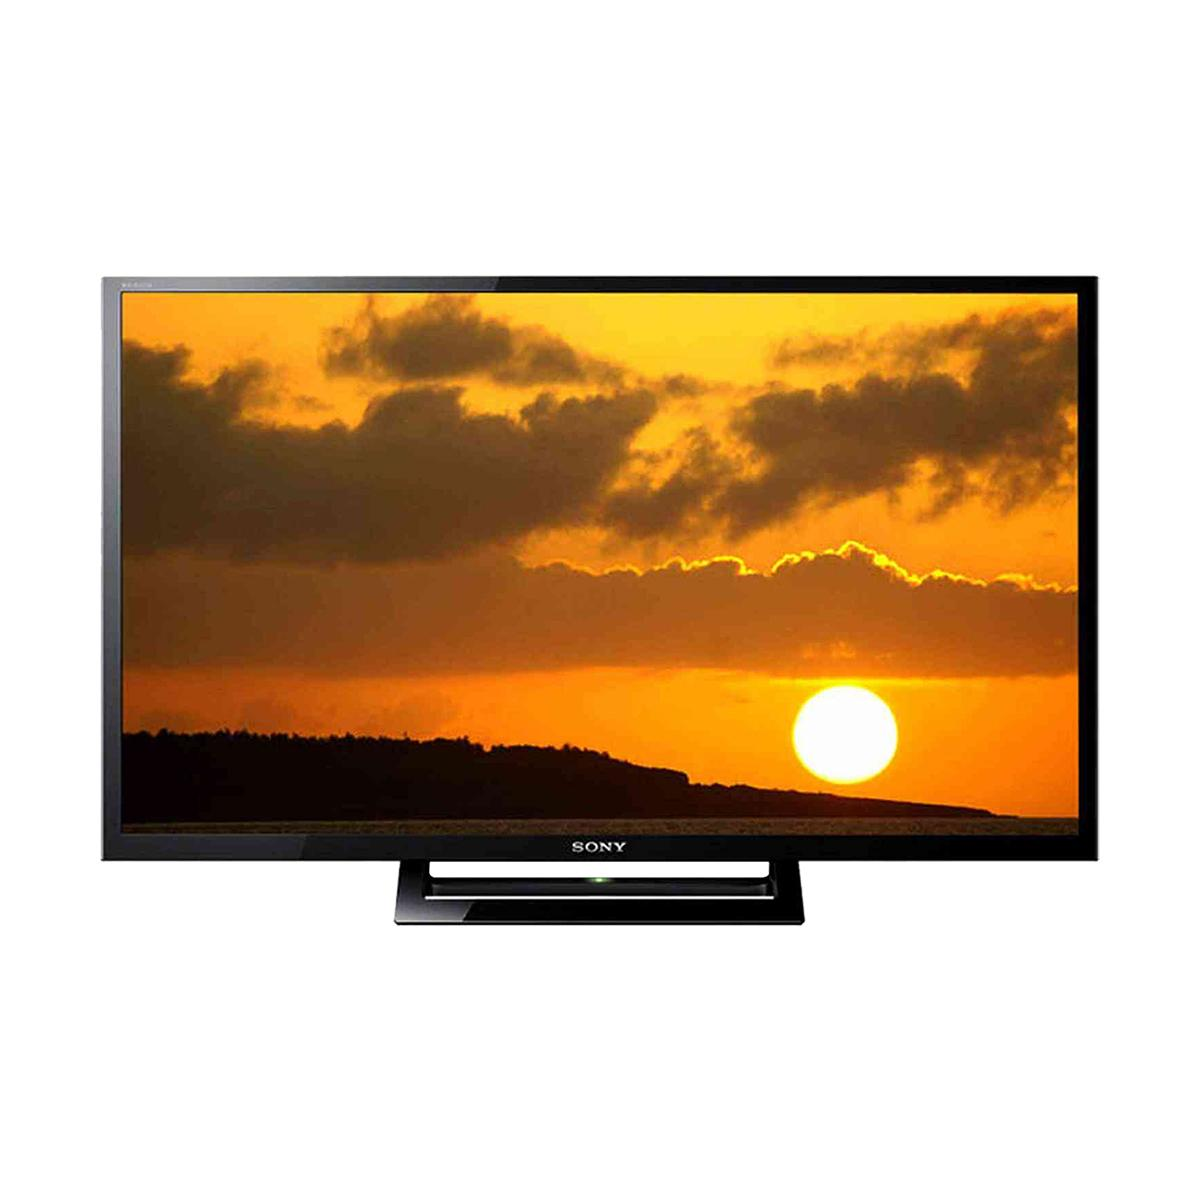 Pink Tv Online Buy Lego Pink Lady Sony Smart Televisions At Best Prices Online In